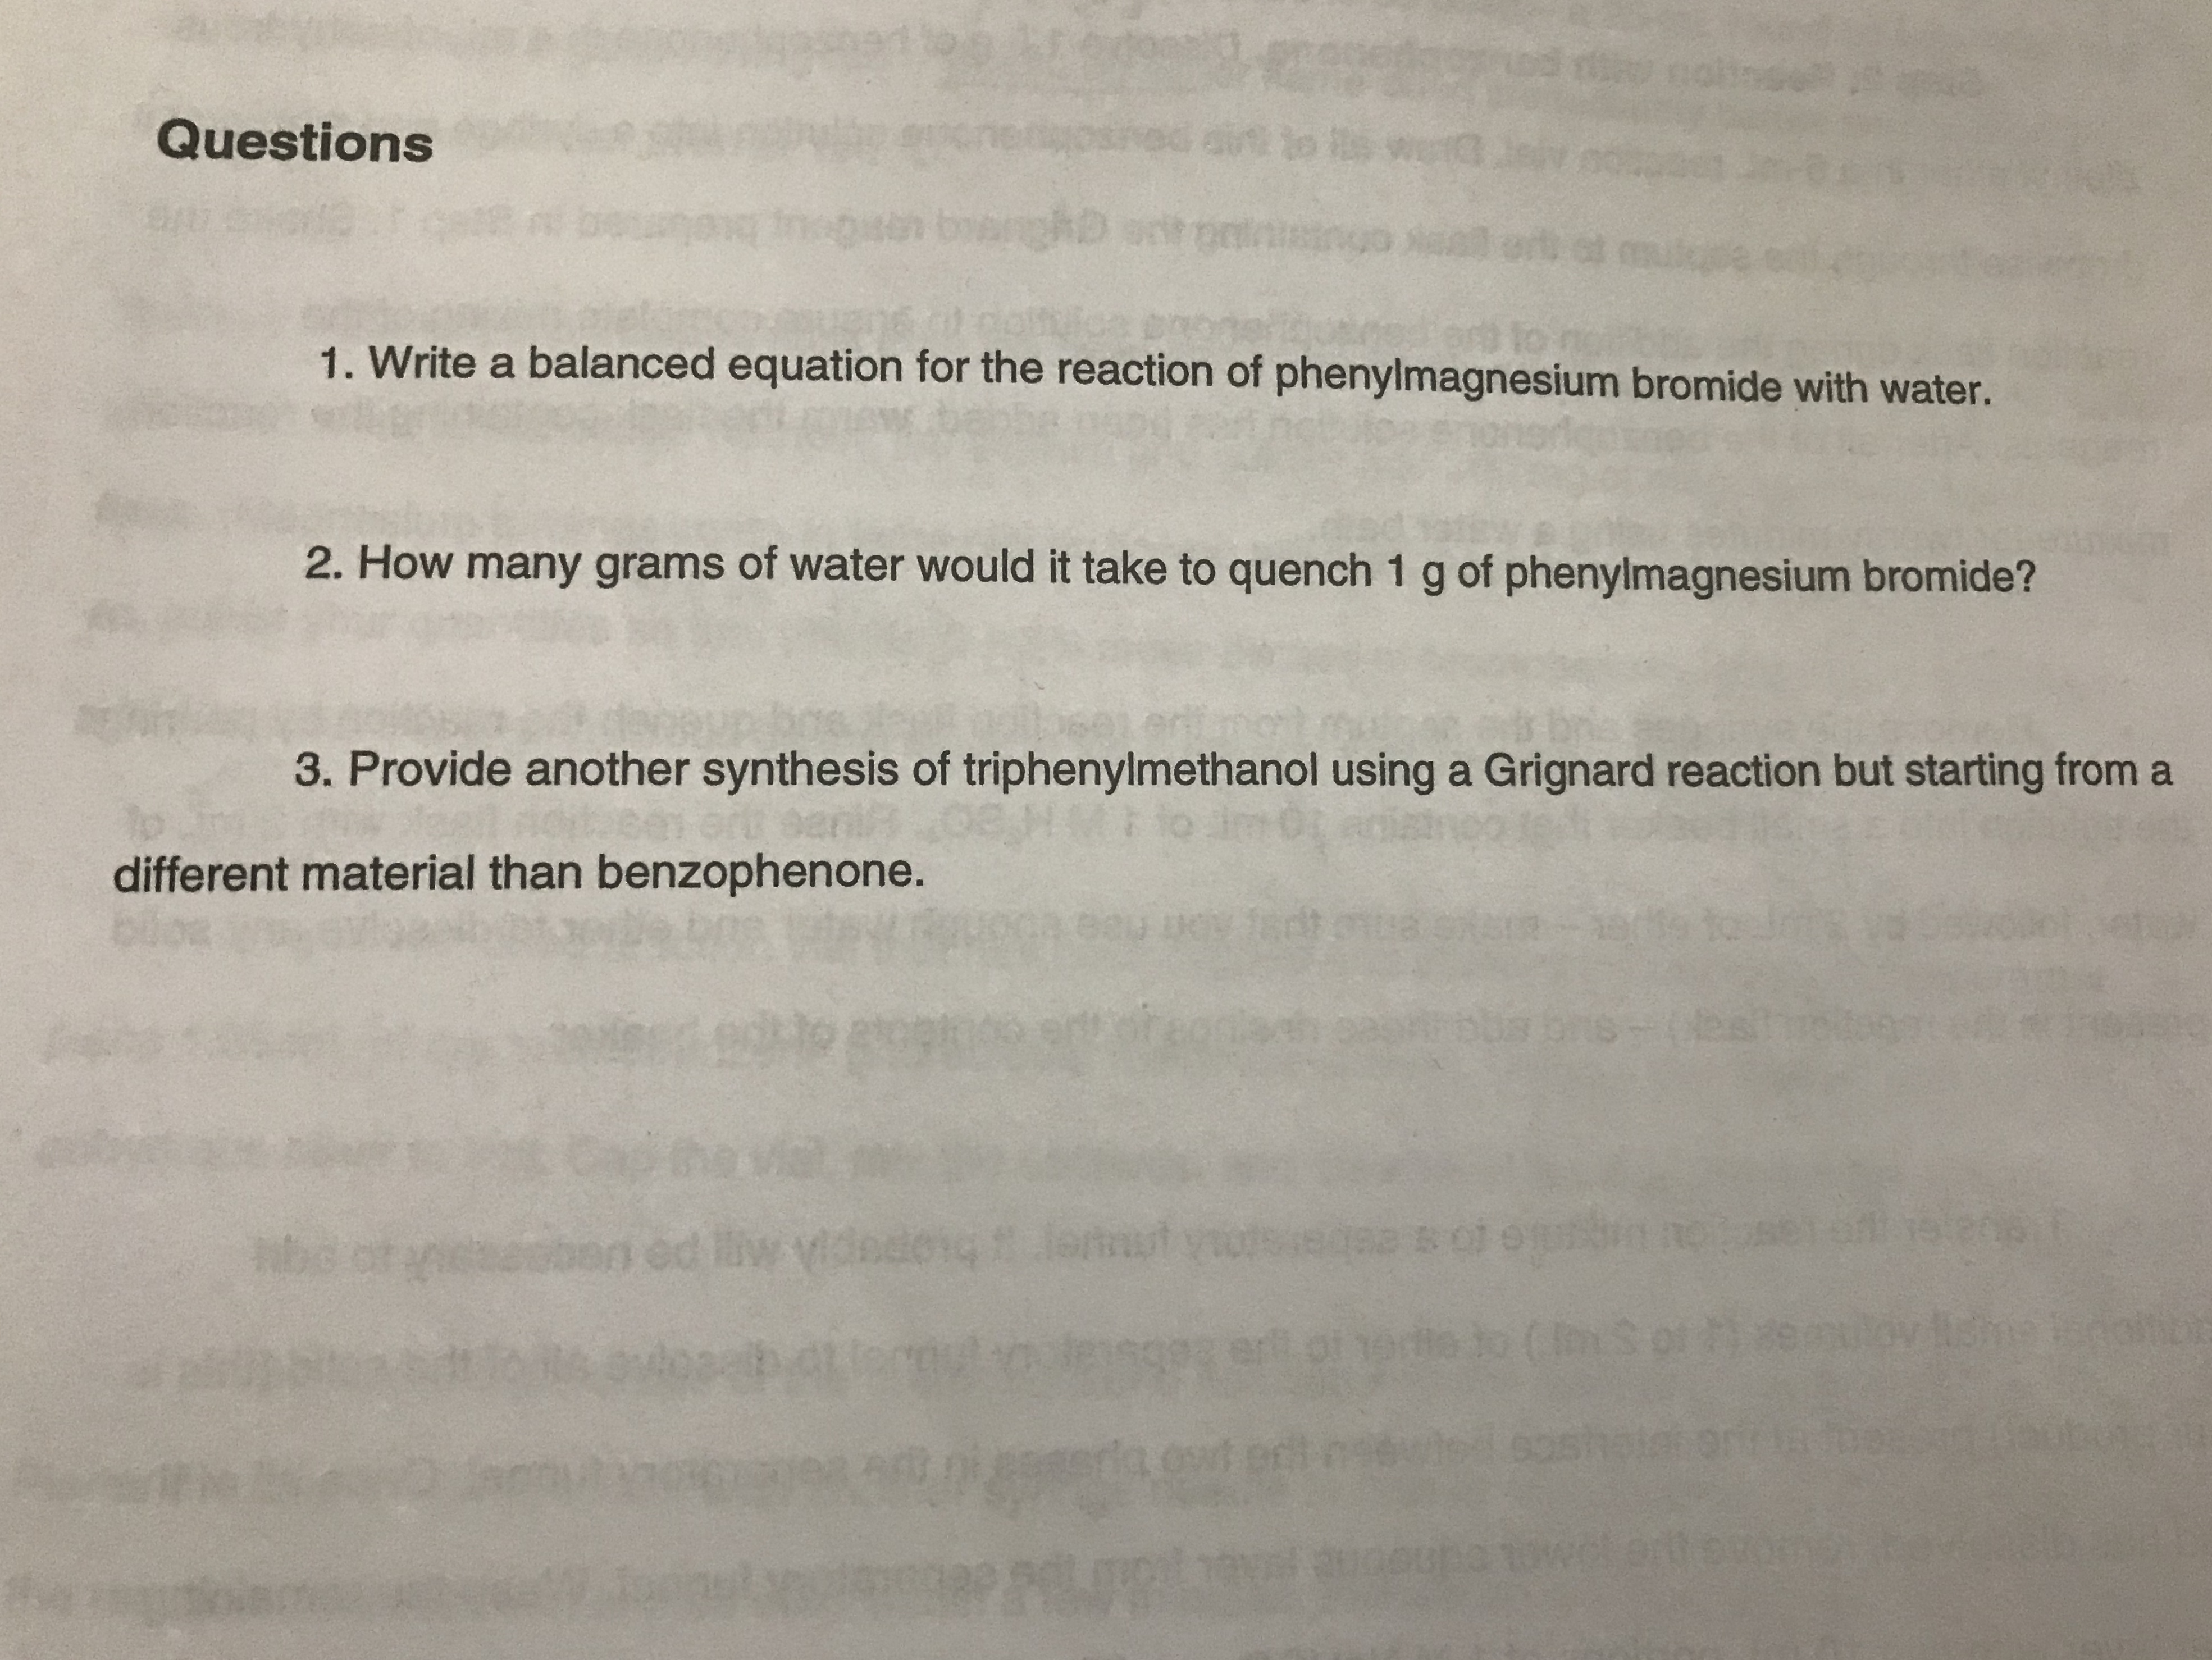 b olb Questions 1. Write a balanced equation for the reaction of phenylmagnesium bromide with water. 2. How many grams of water would it take to quench 1 g of phenylmagnesium bromide? 3. Provide another synthesis of triphenylmethanol using a Grignard reaction but starting from a different material than benzophenone. Tadt 01088rer19rt9 s DTS=(D yel208 02 Bot et ed i ovitdhe ie ert of odito ( gp da wt ortogoutsdsoshaorm Hannoup UR P F